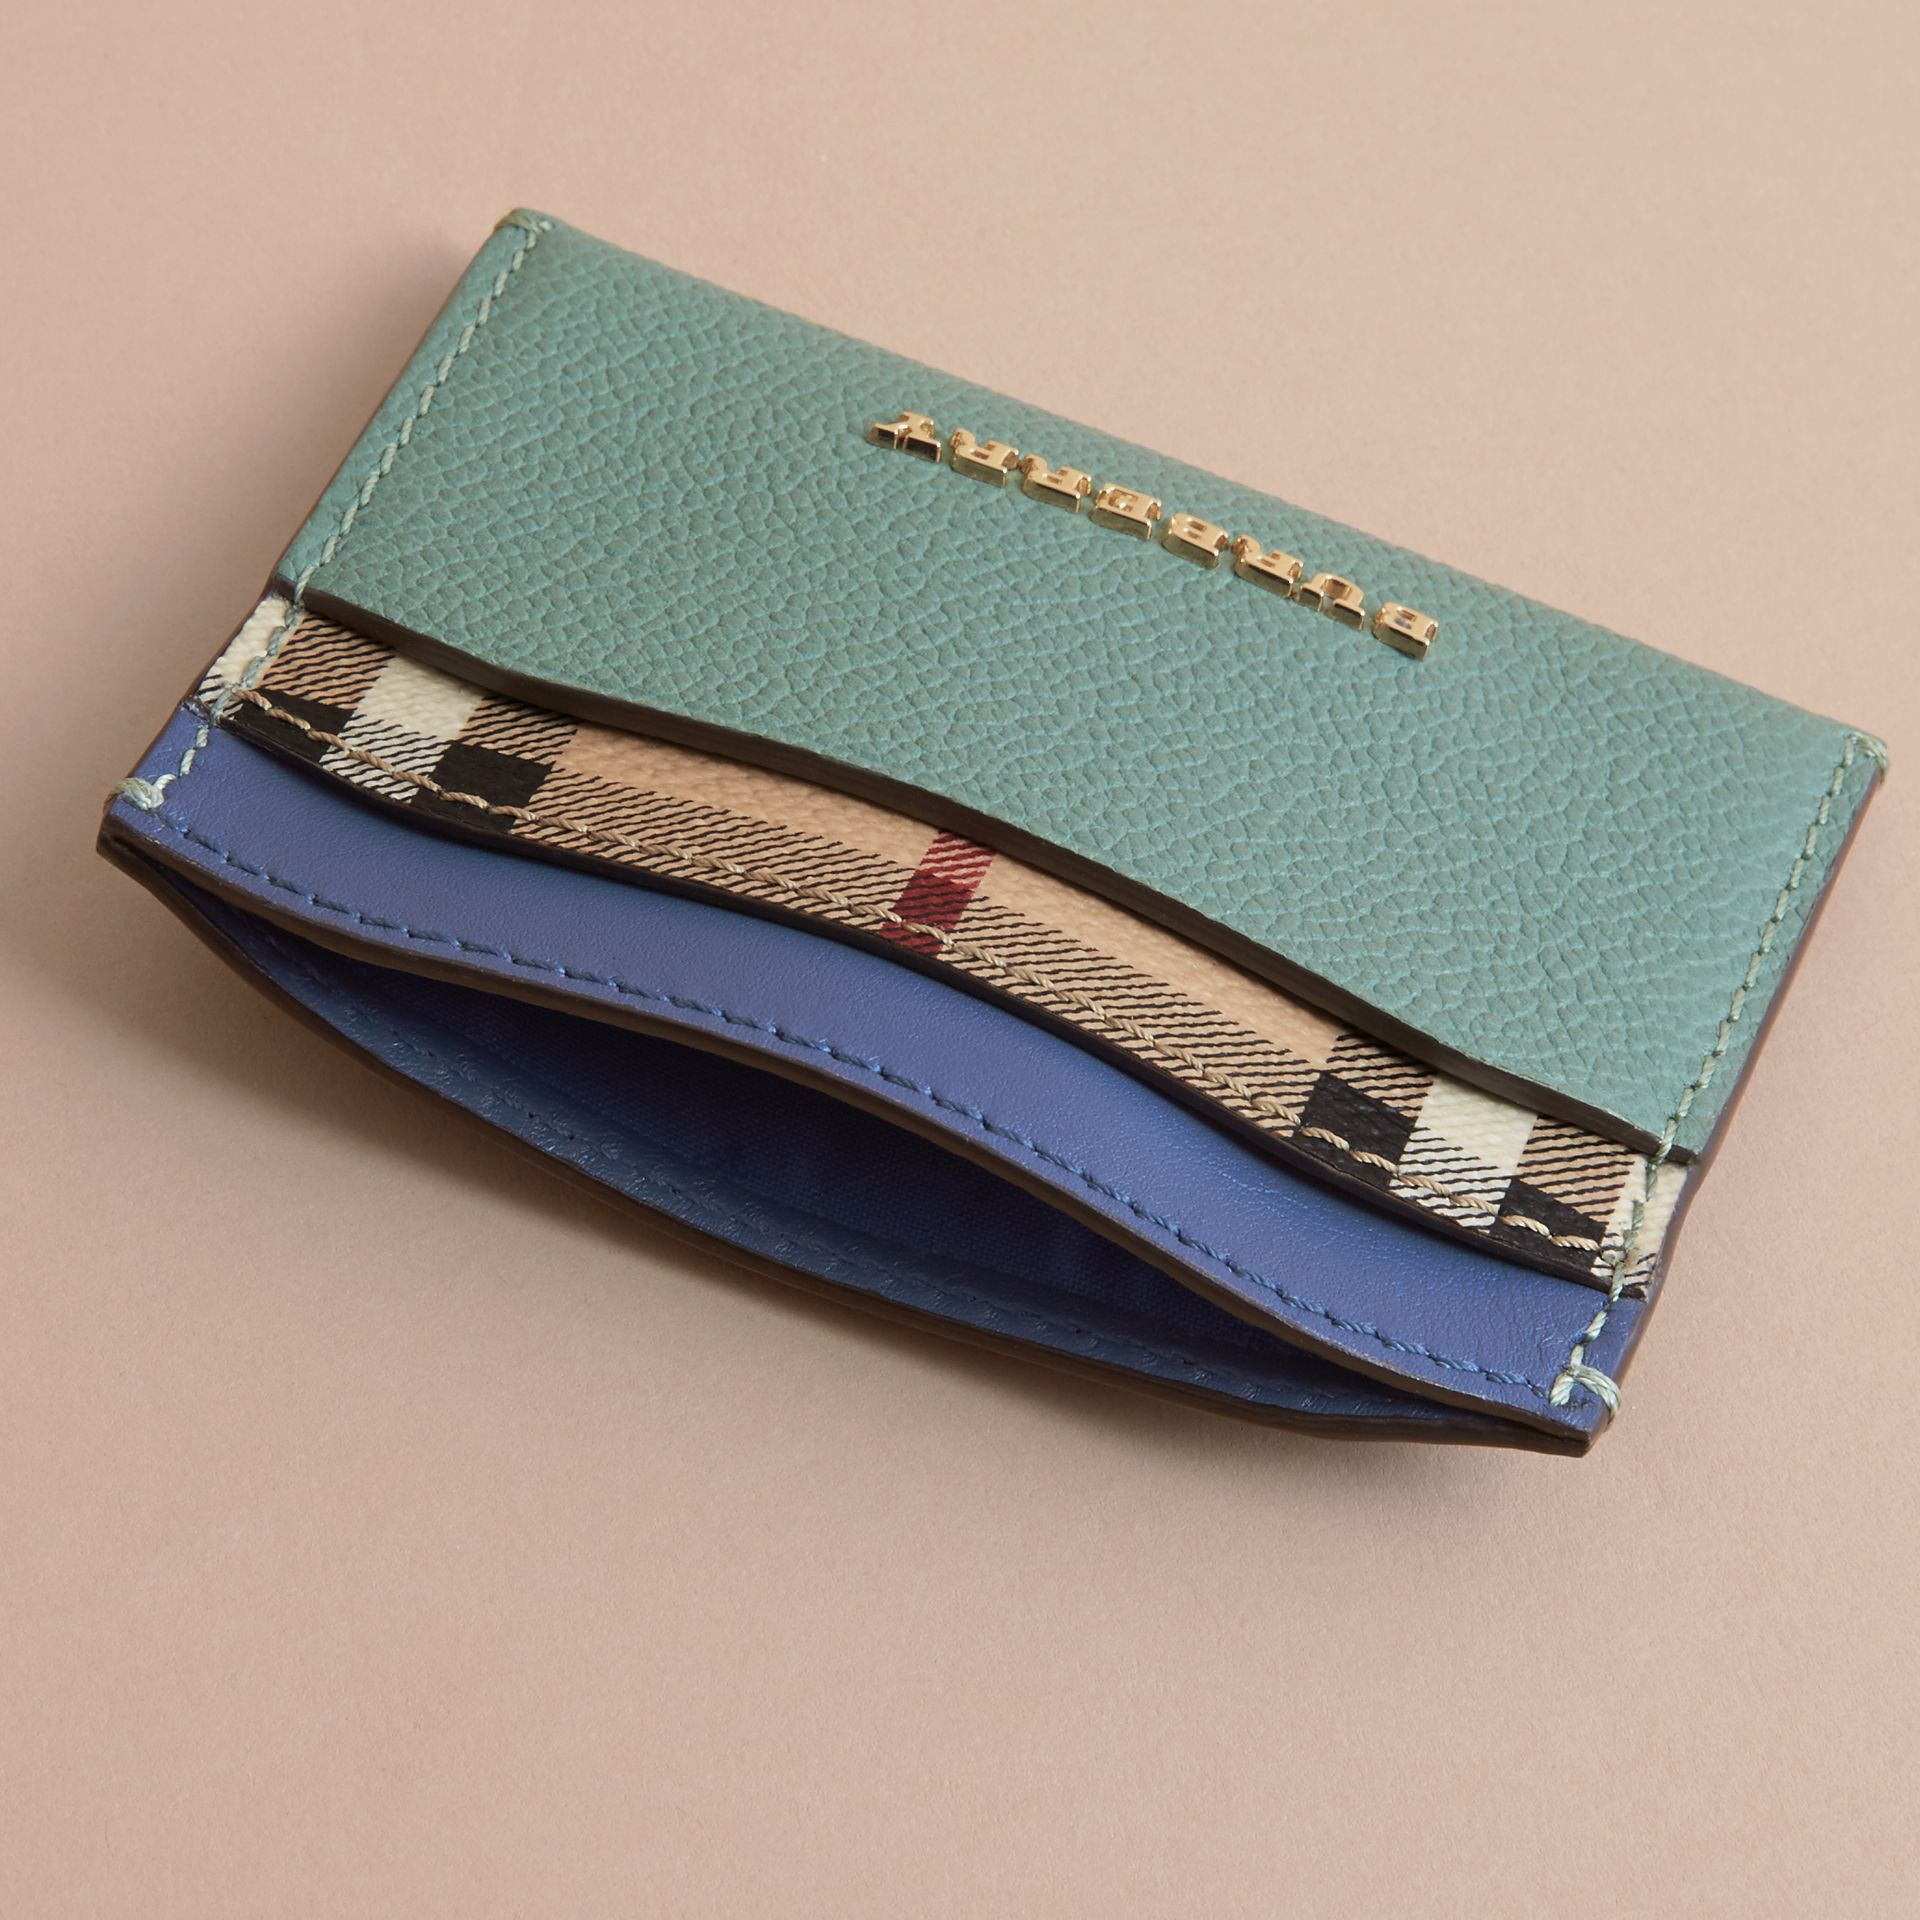 Colour Block Leather and Haymarket Check Card Case in Eucalyptus Grn/multi - Women | Burberry Hong Kong - gallery image 4